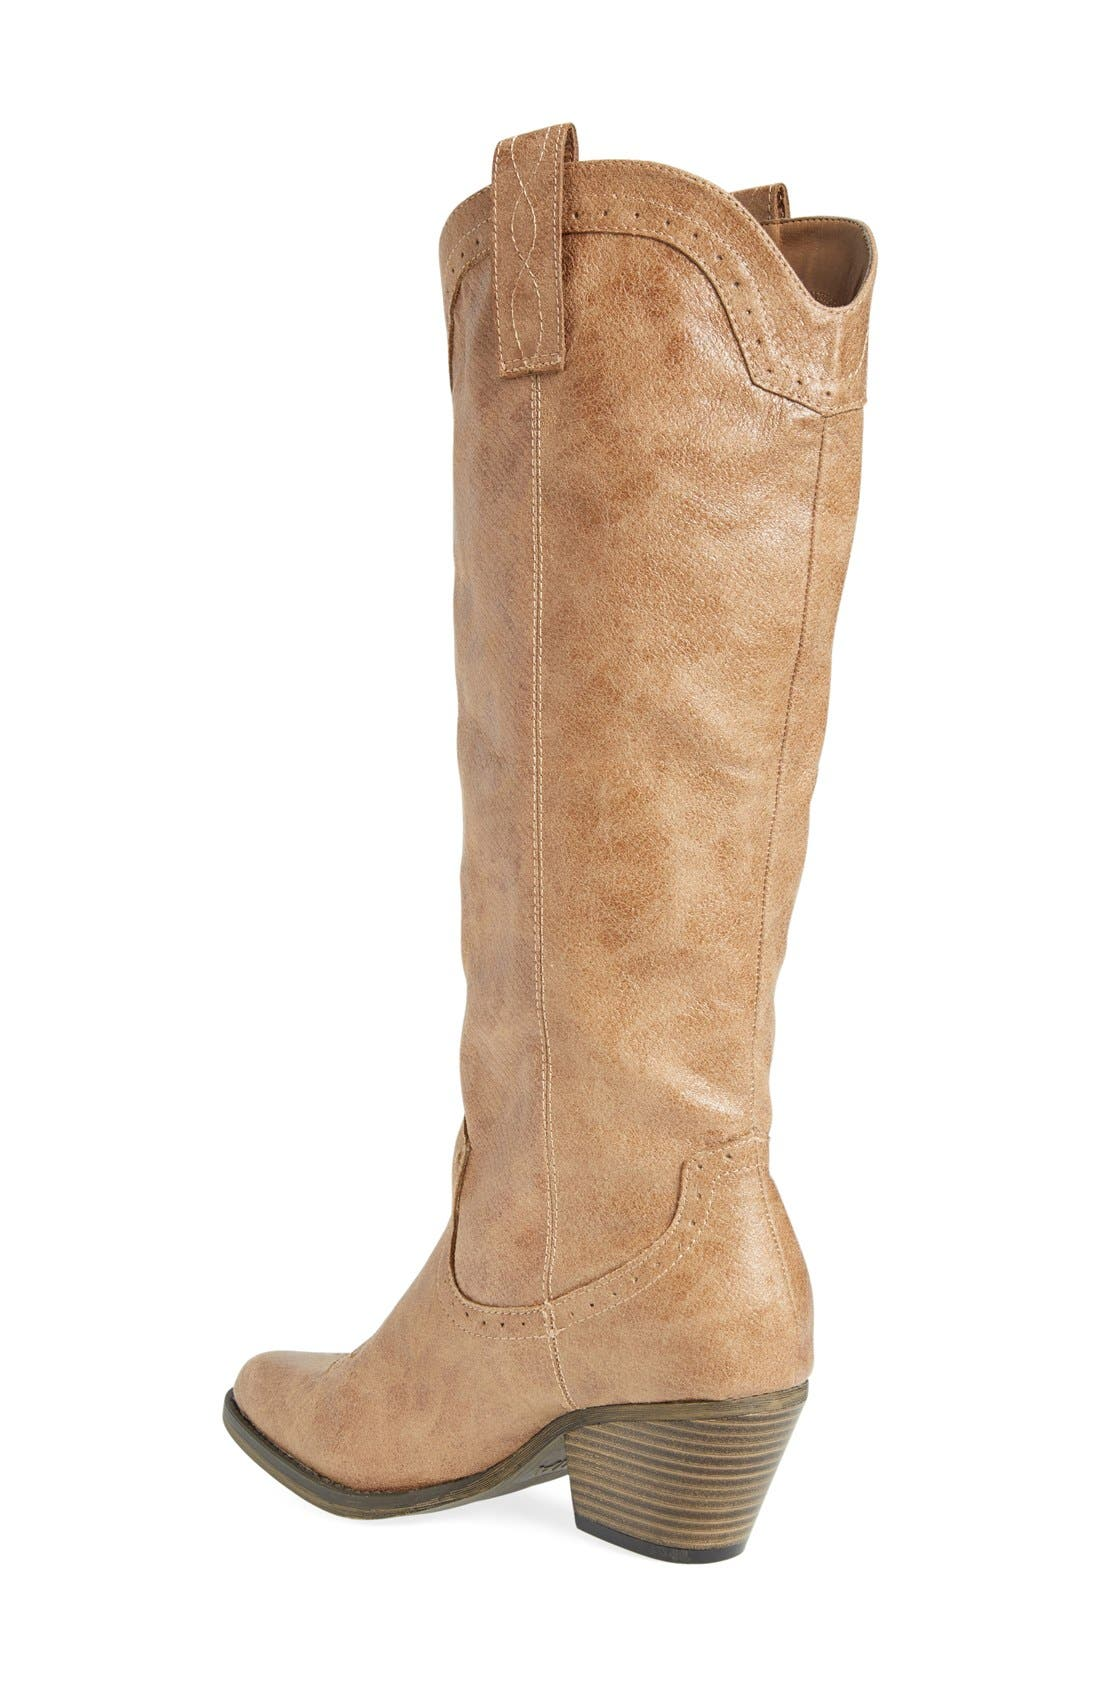 'Pawn' Boot,                             Alternate thumbnail 2, color,                             Natural Faux Leather